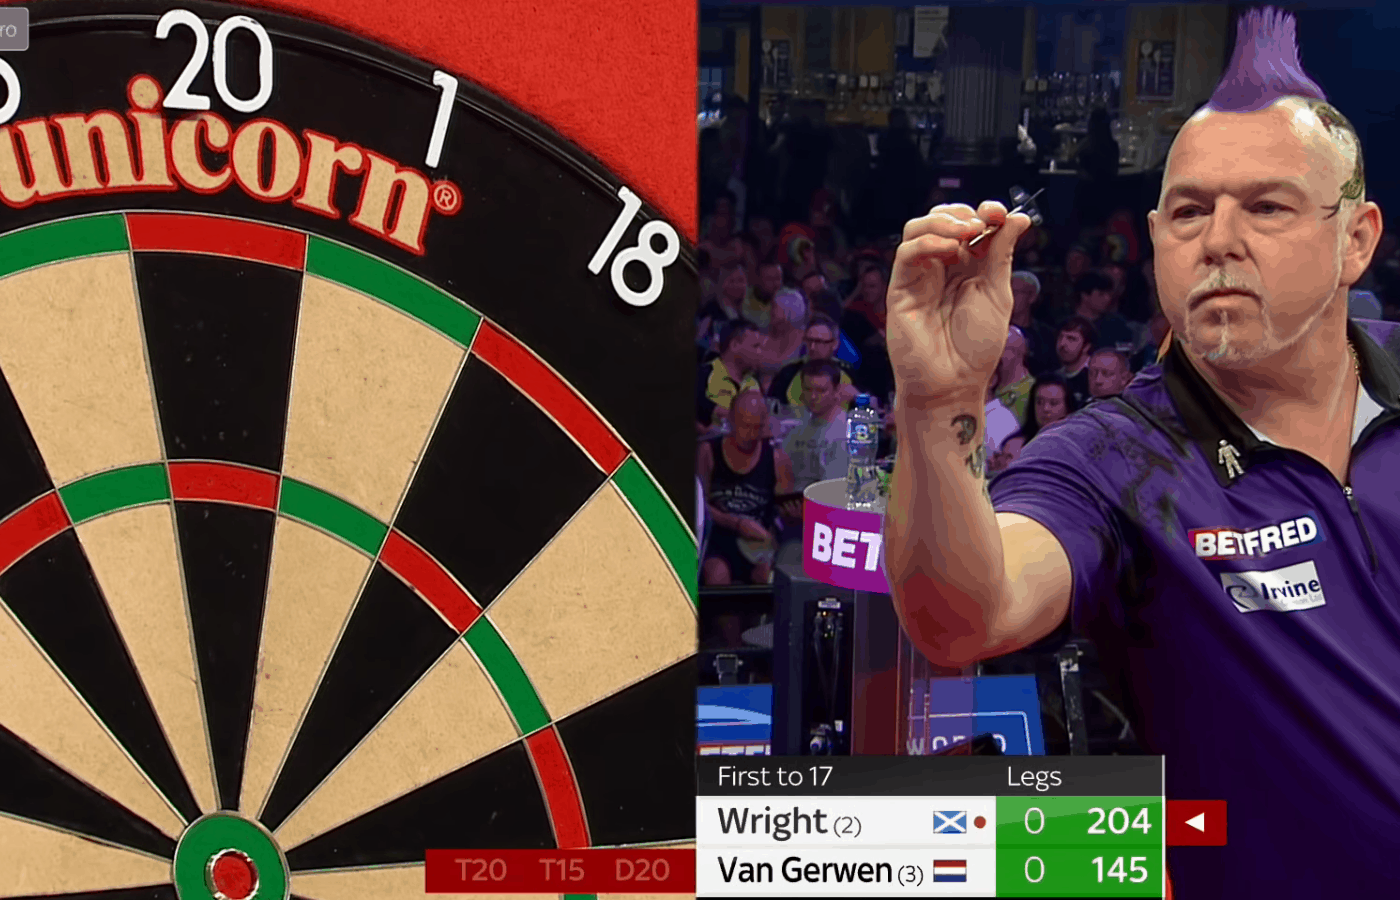 What Darts Does Peter Wright Use